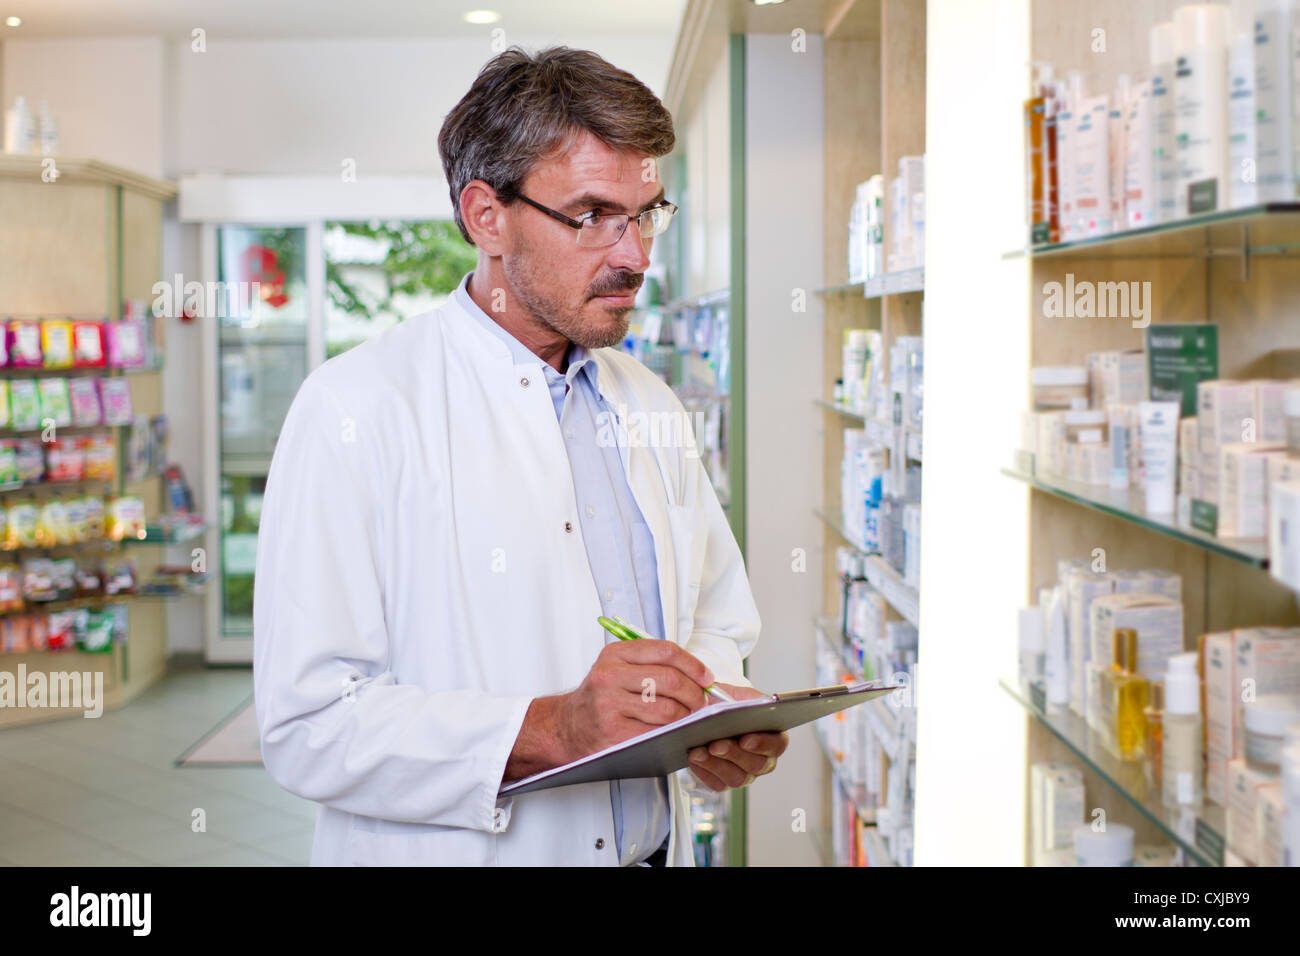 Germany, Brandenburg, Pharmacist checking products in pharmacy - Stock Image